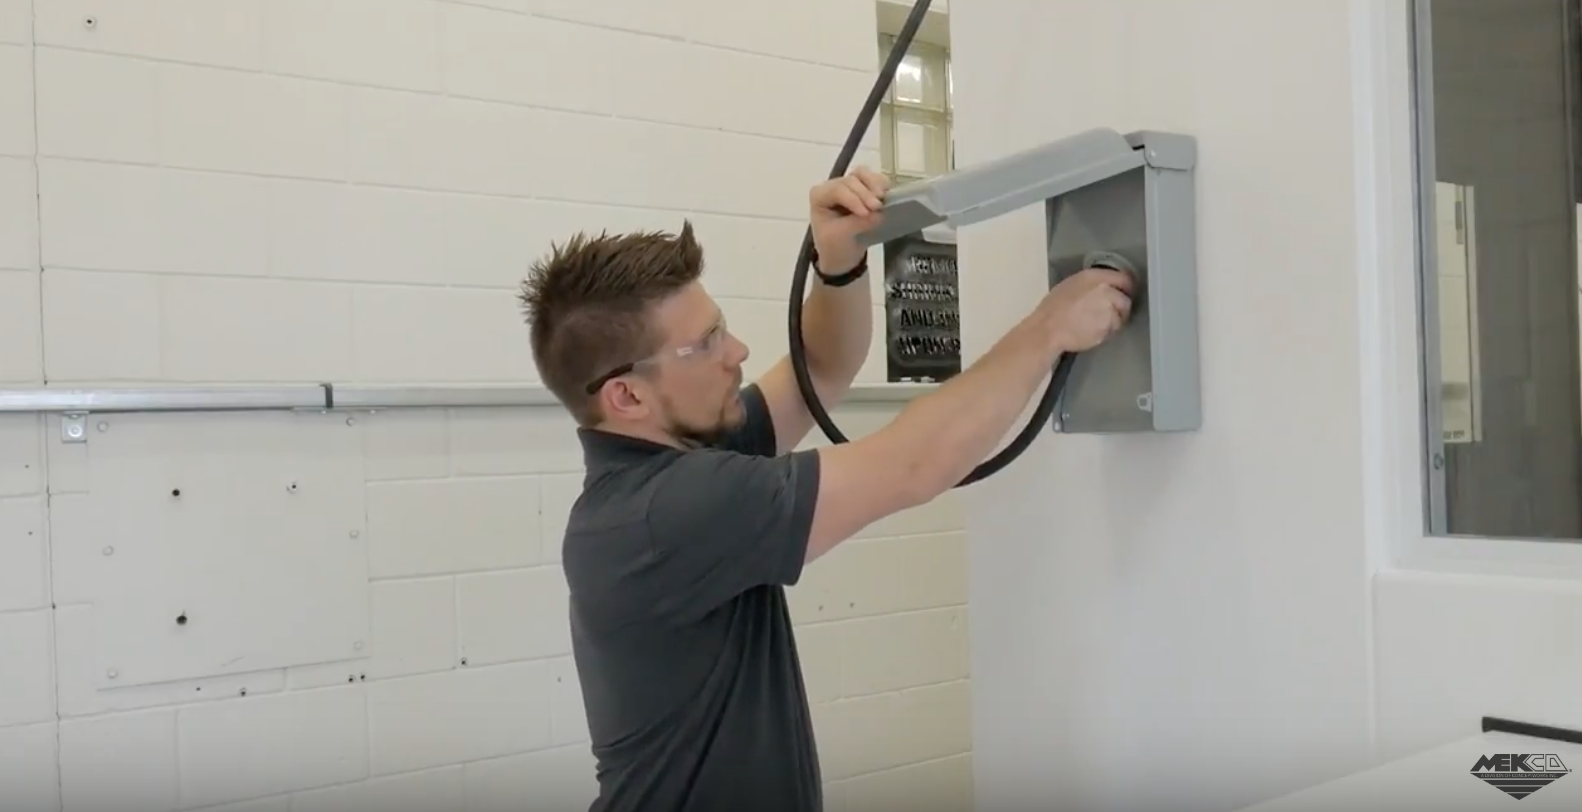 Adam plugging in the single power connection outlet